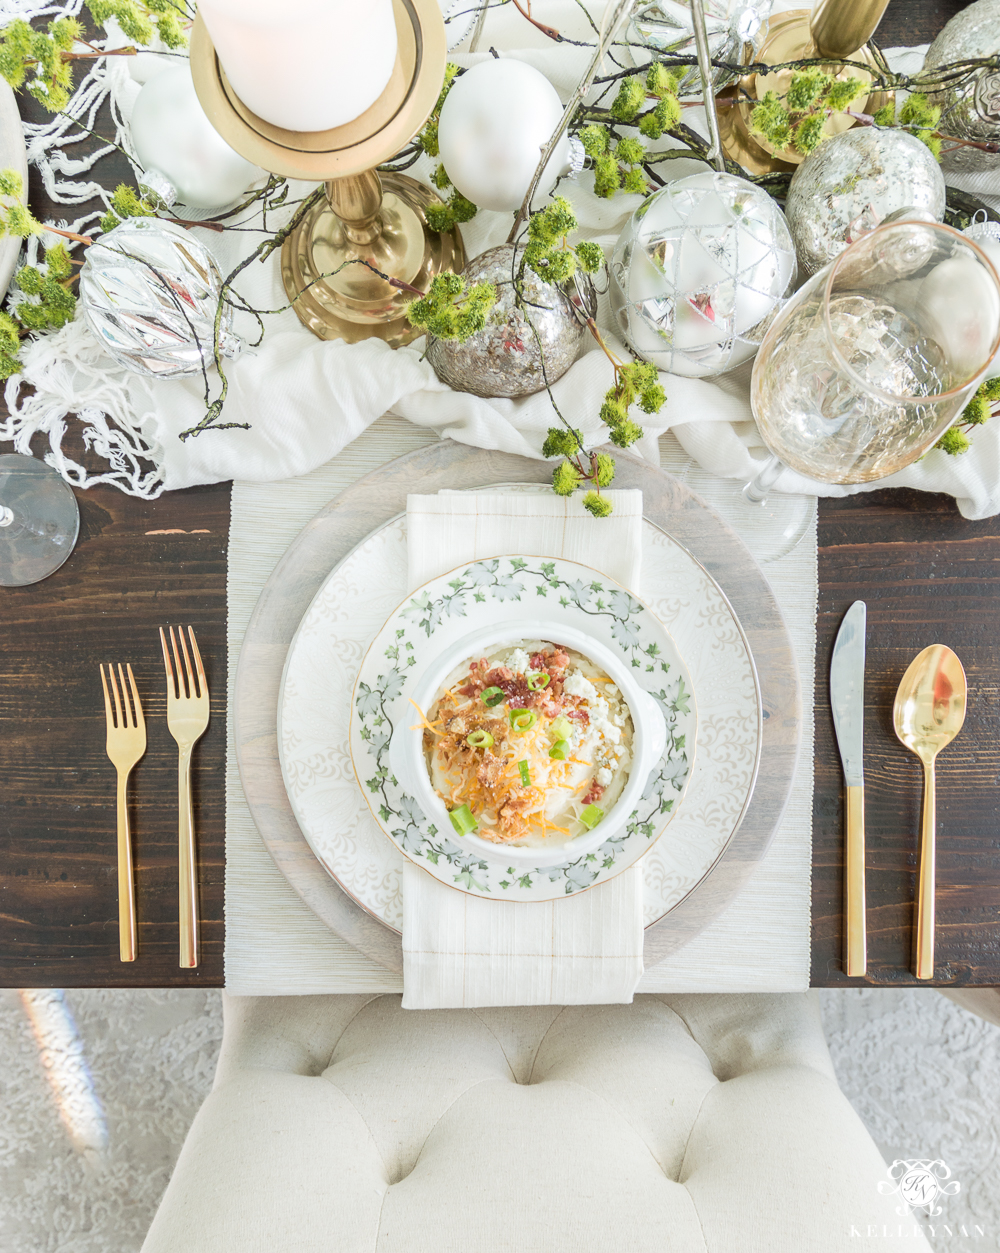 Christmas Place Setting Ideas for Dinner table